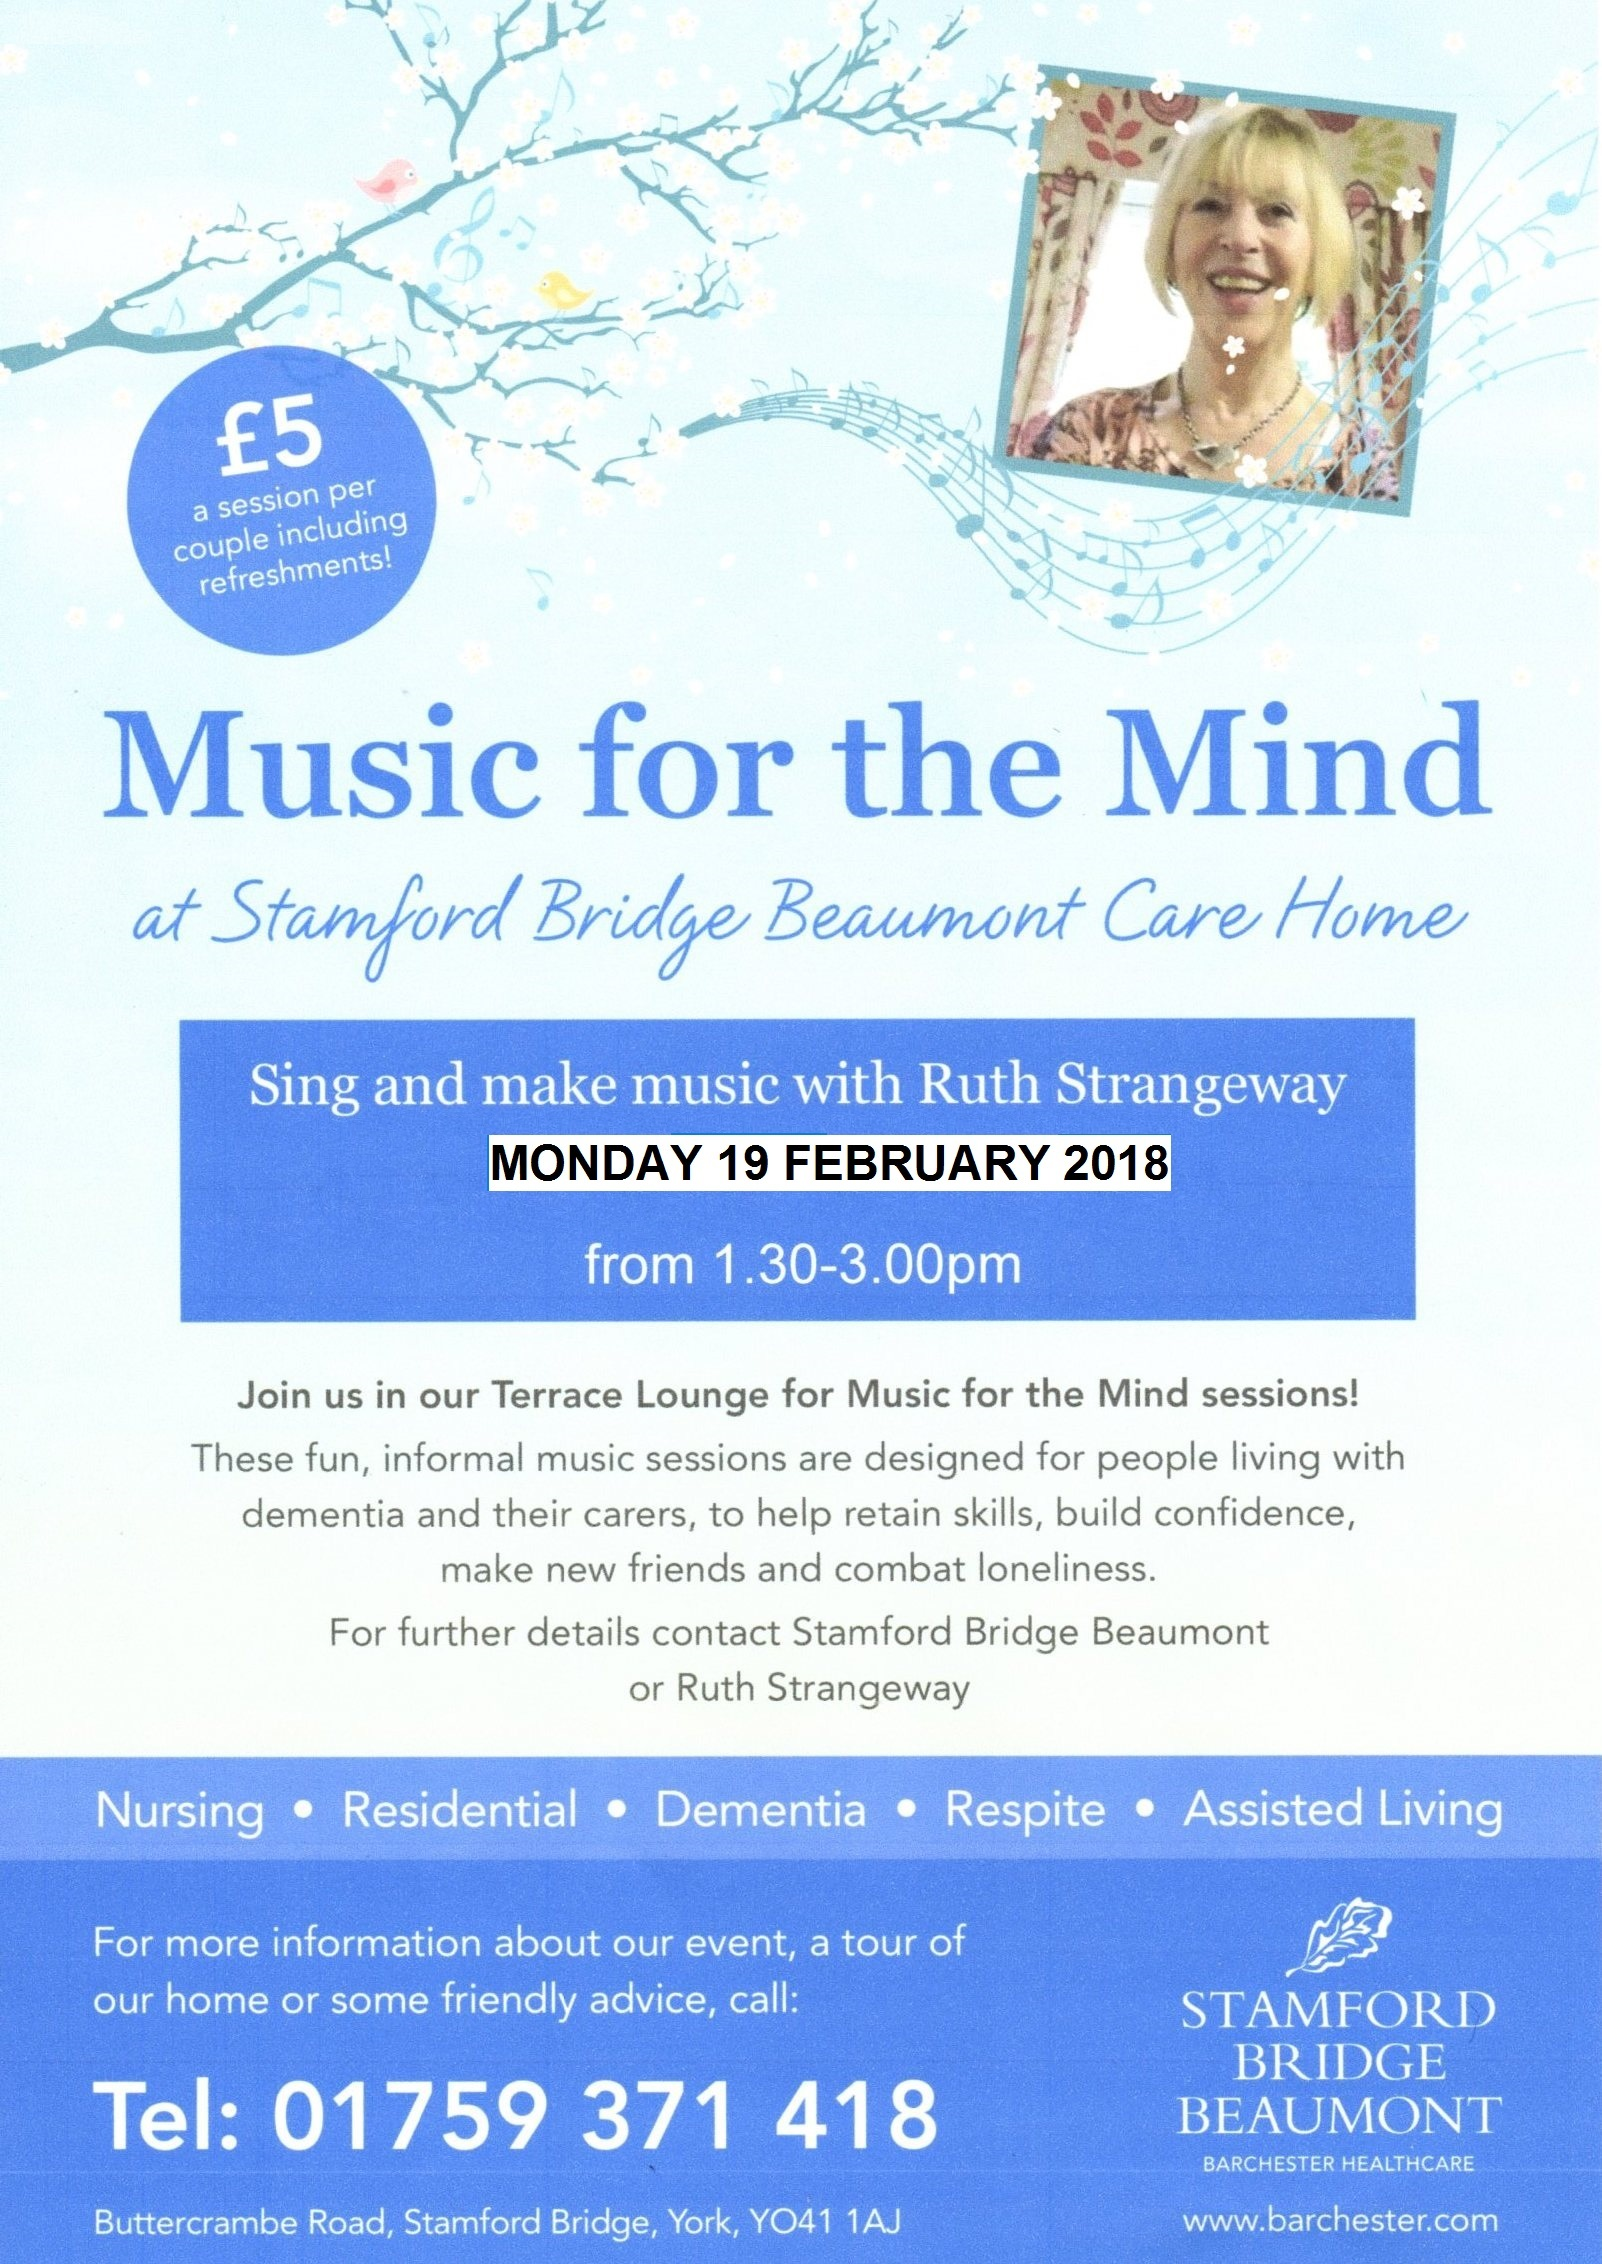 Music for the Mind Next Session 19 February 2018